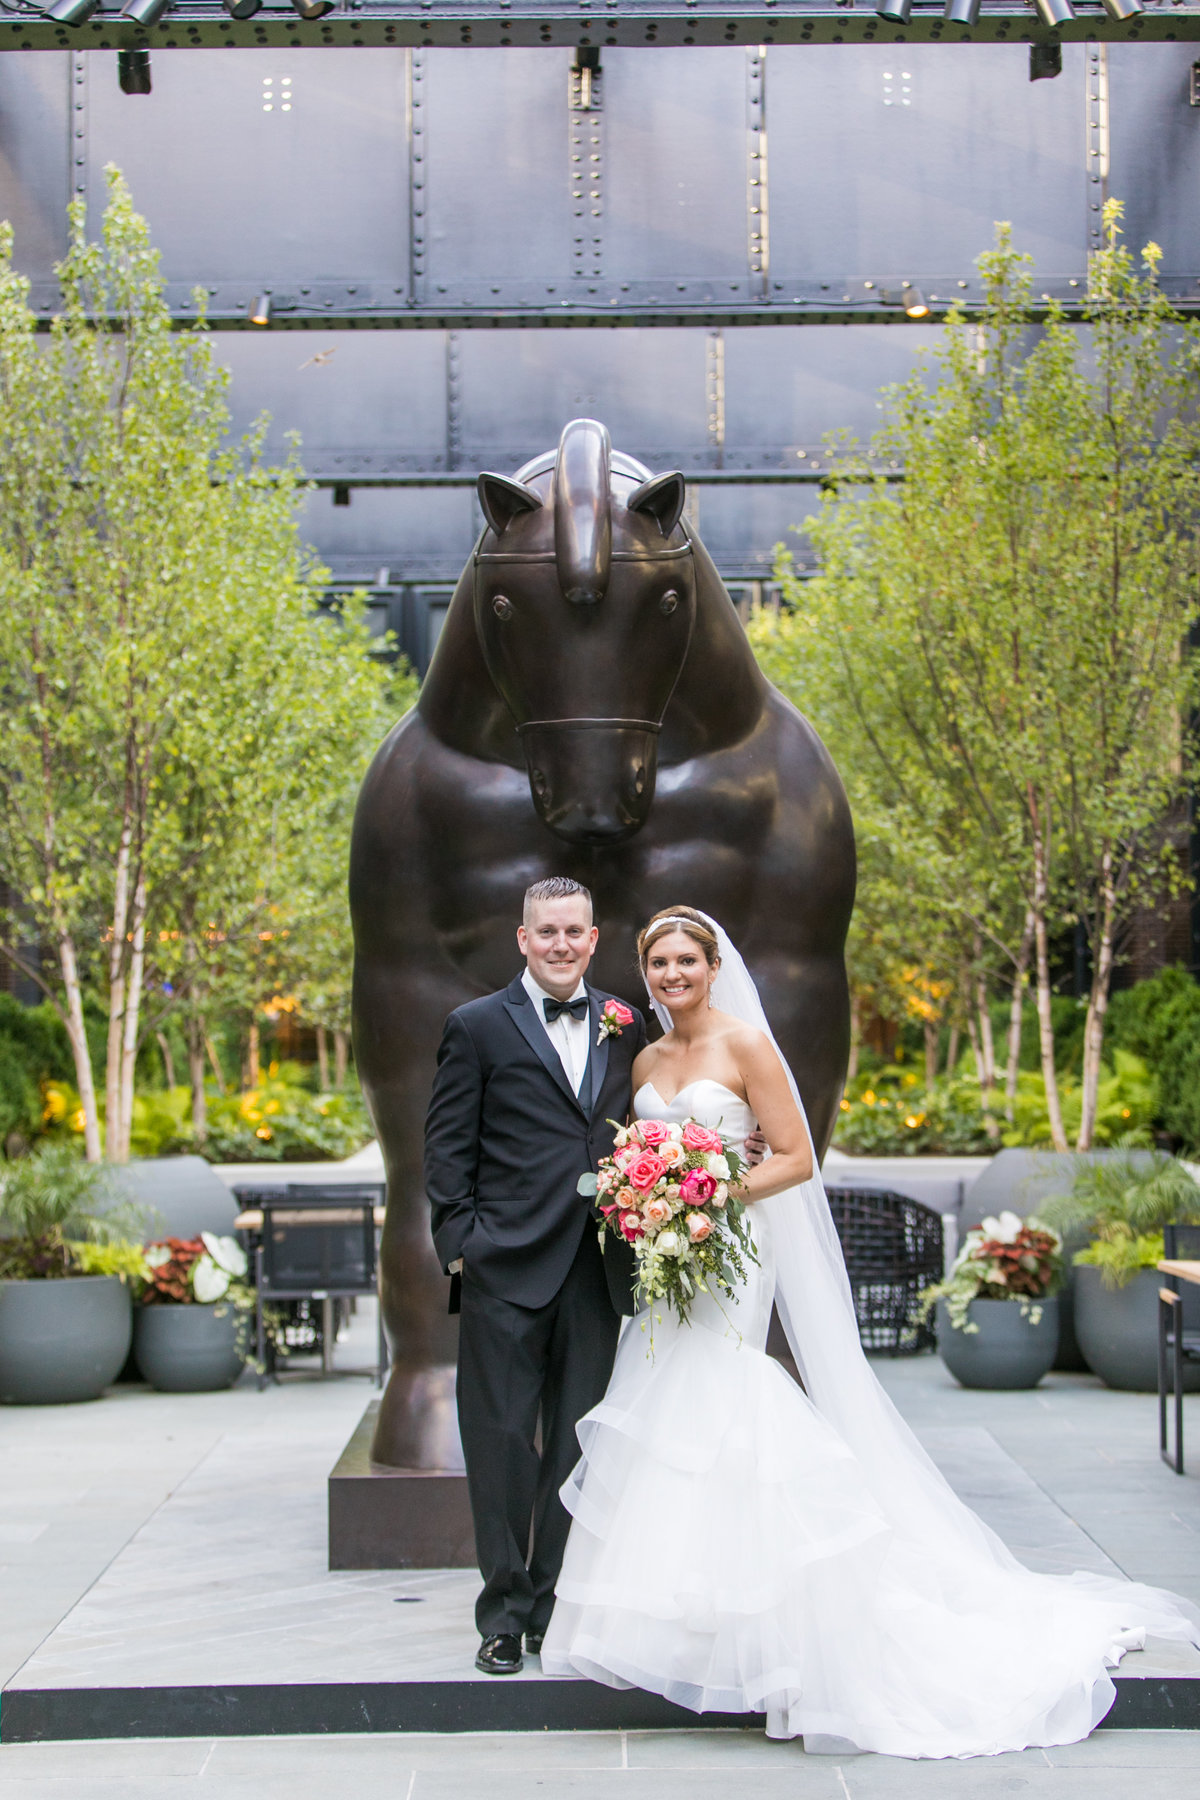 Sagamore Pendry Baltimore wedding with the horse